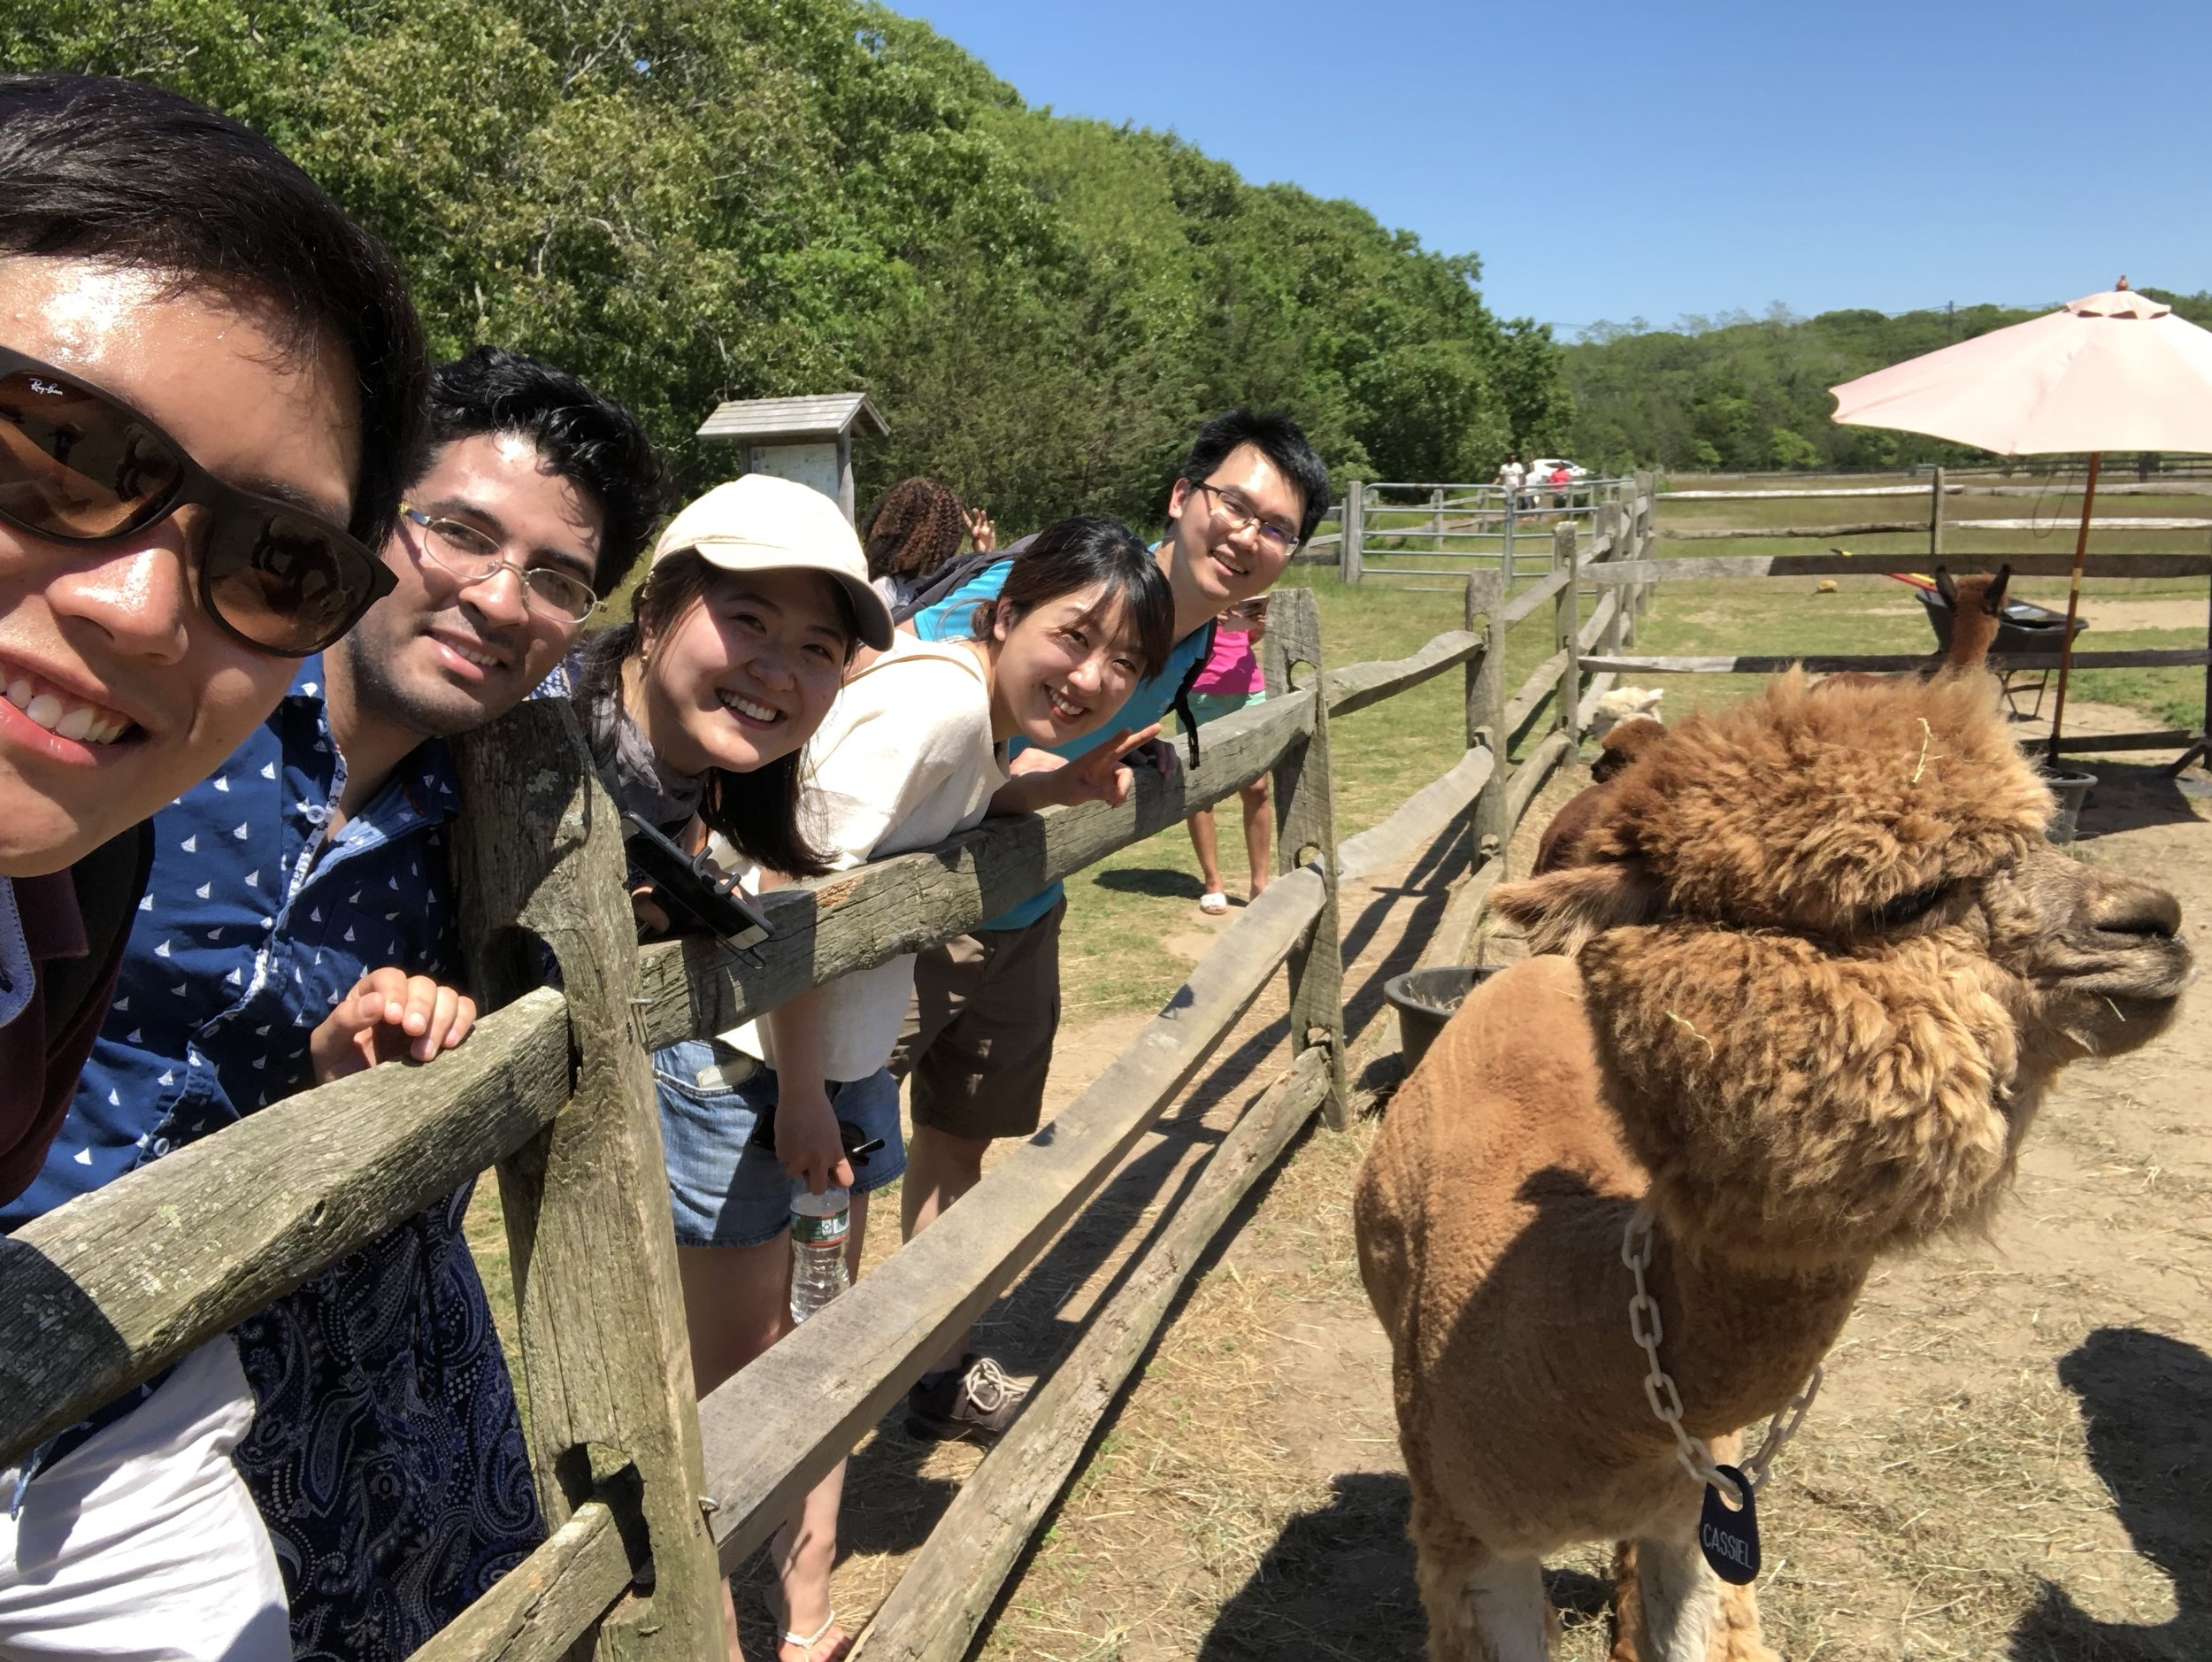 Group going to alpaca farm to study our fav animal!